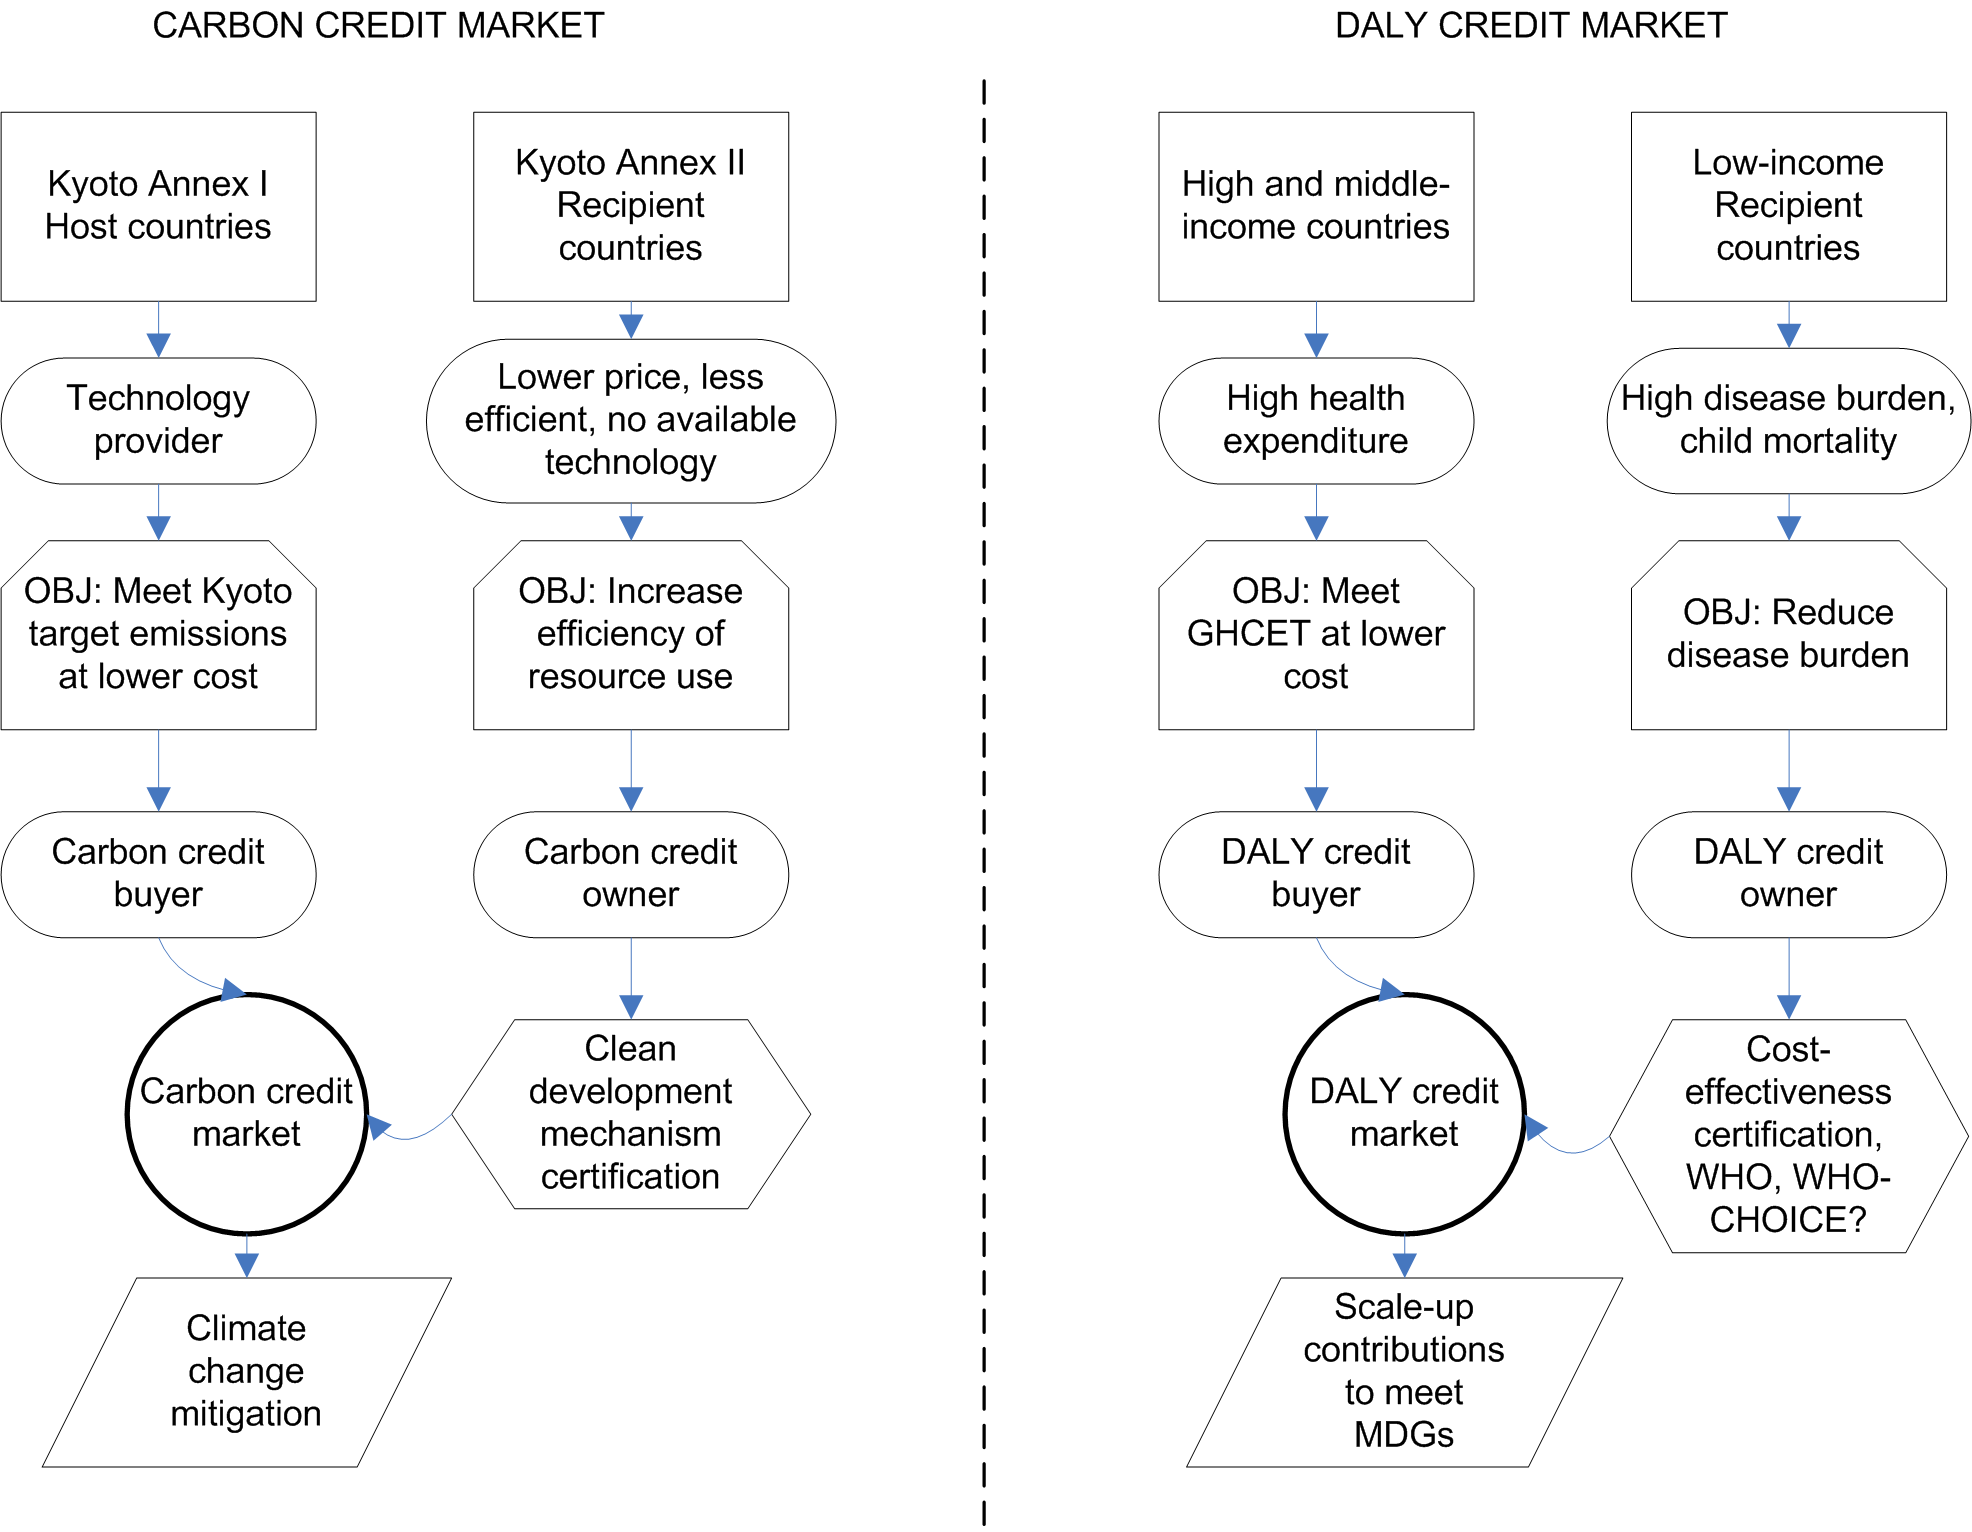 Conceptual comparison of carbon credit markets for the mitigation of climate change and the proposed DALY credit market to meet the health MDGs.